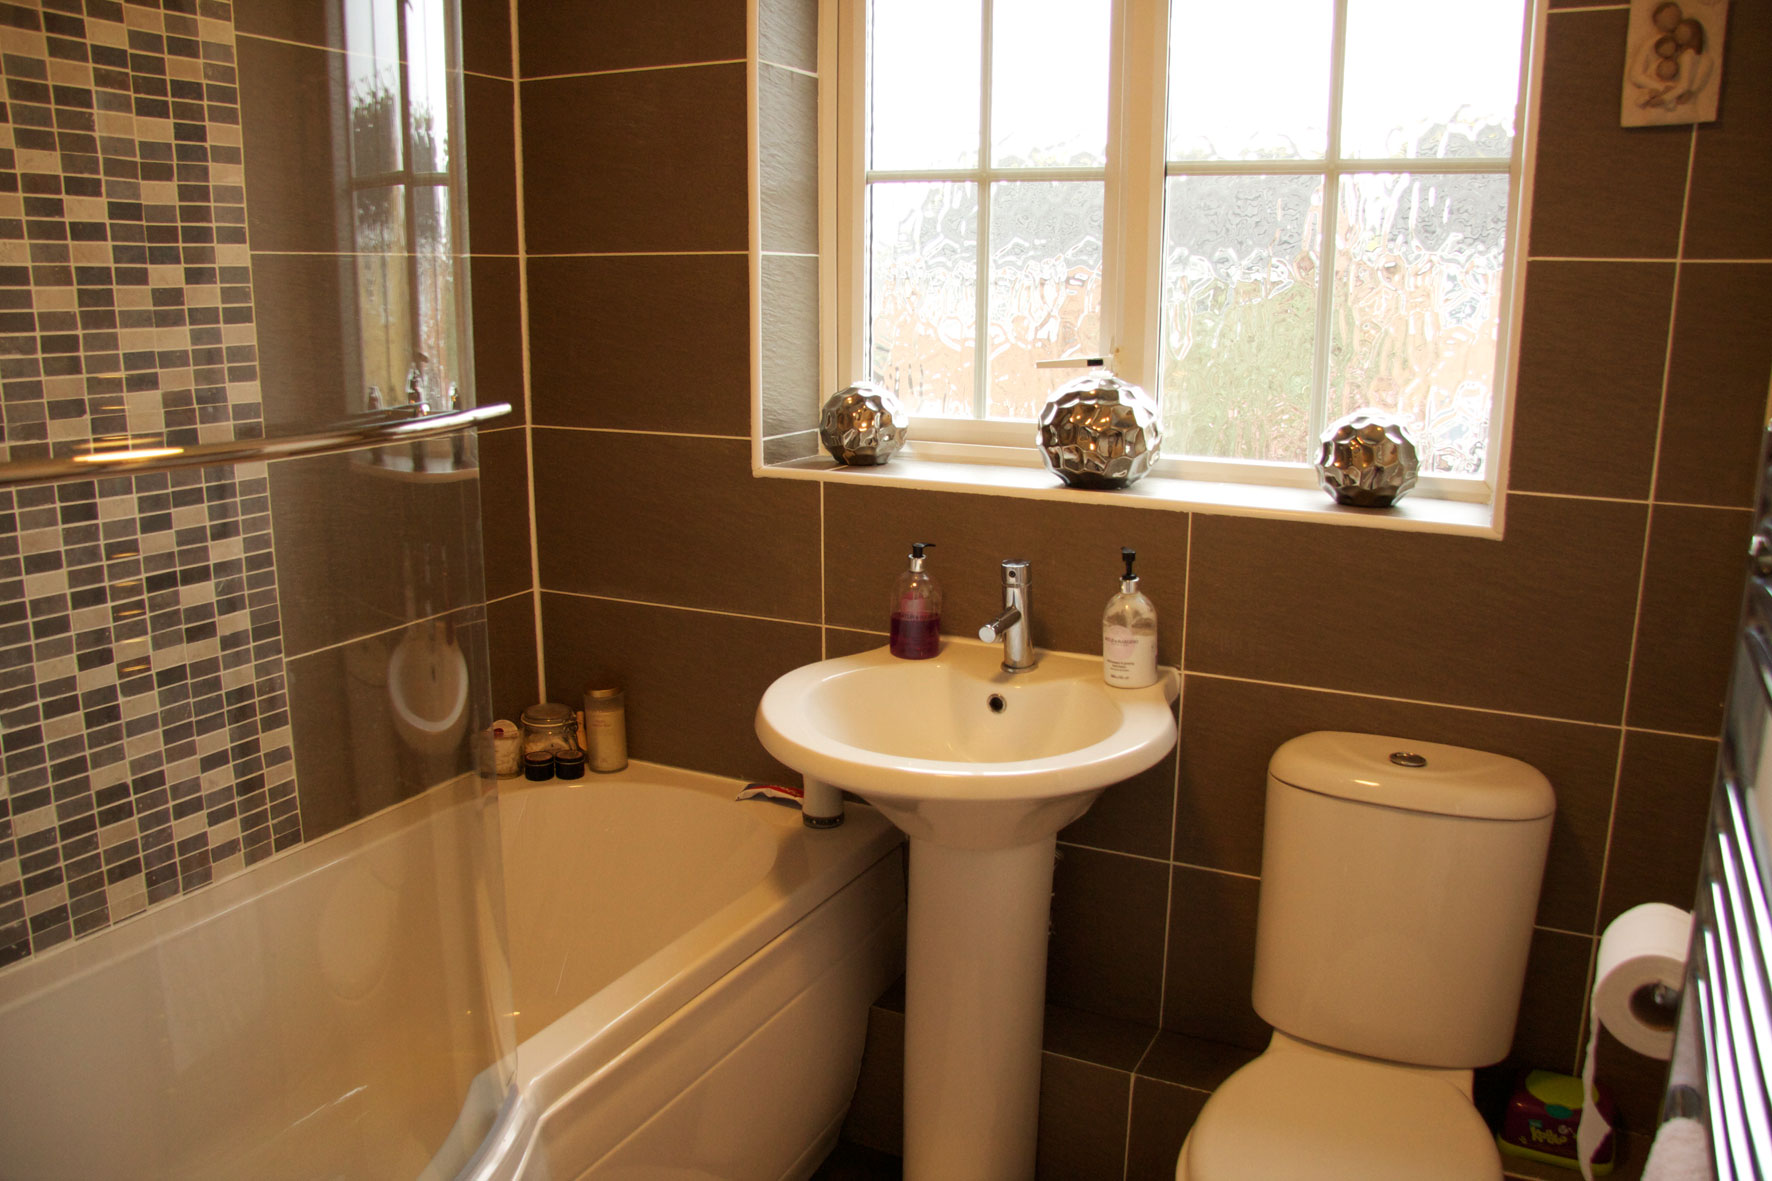 Work ac homeworks northampton based home improvements for Bathtub pictures designs